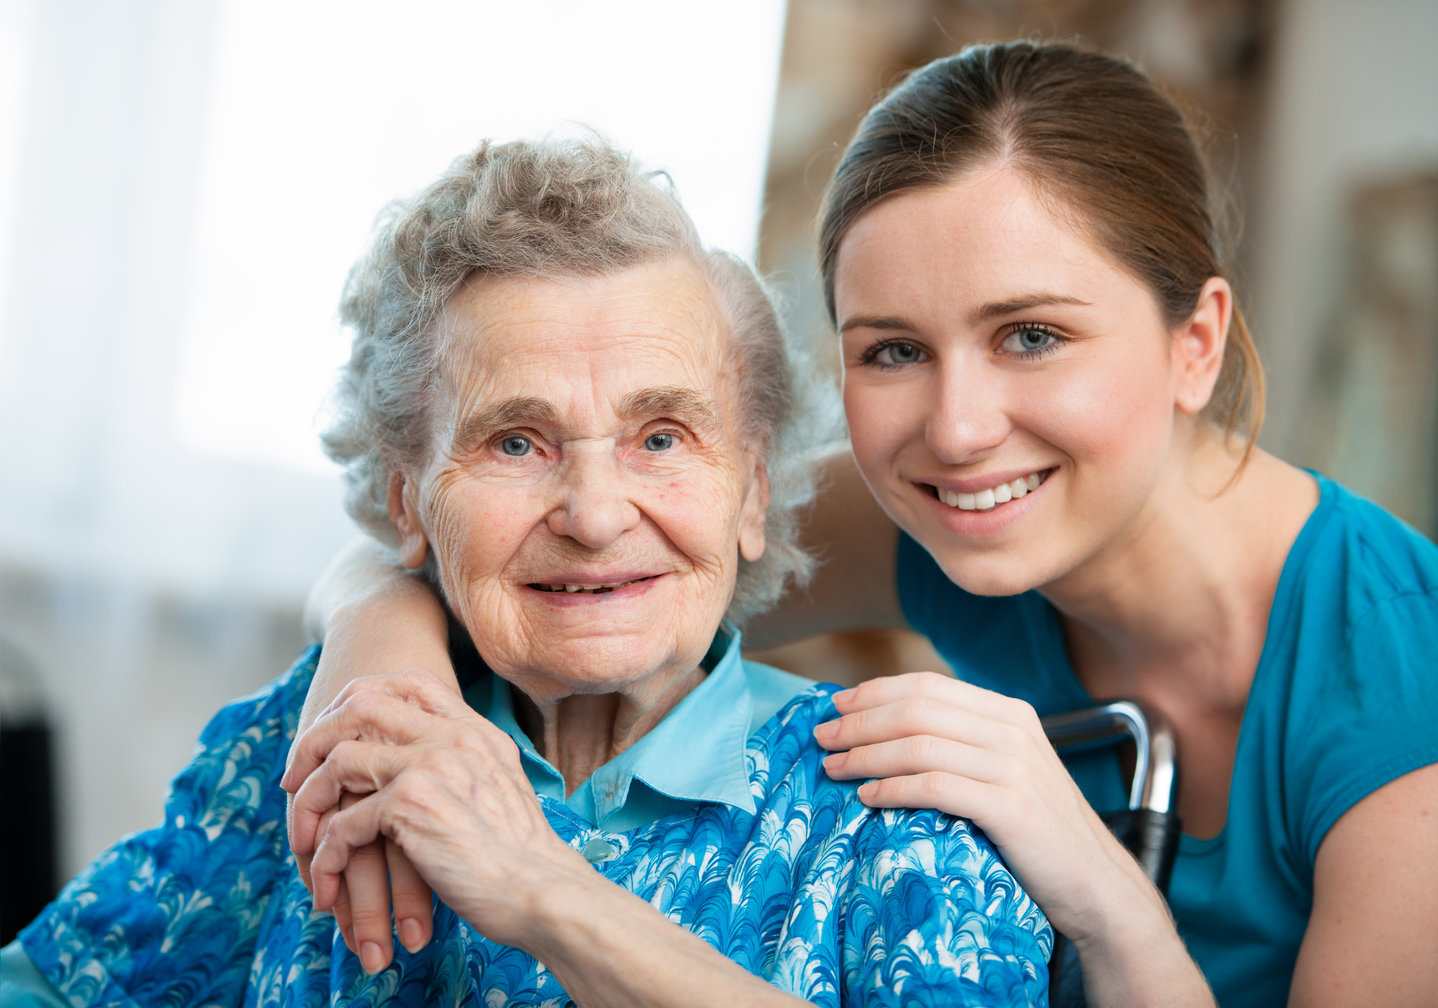 Senior and staff at a long-term care facility